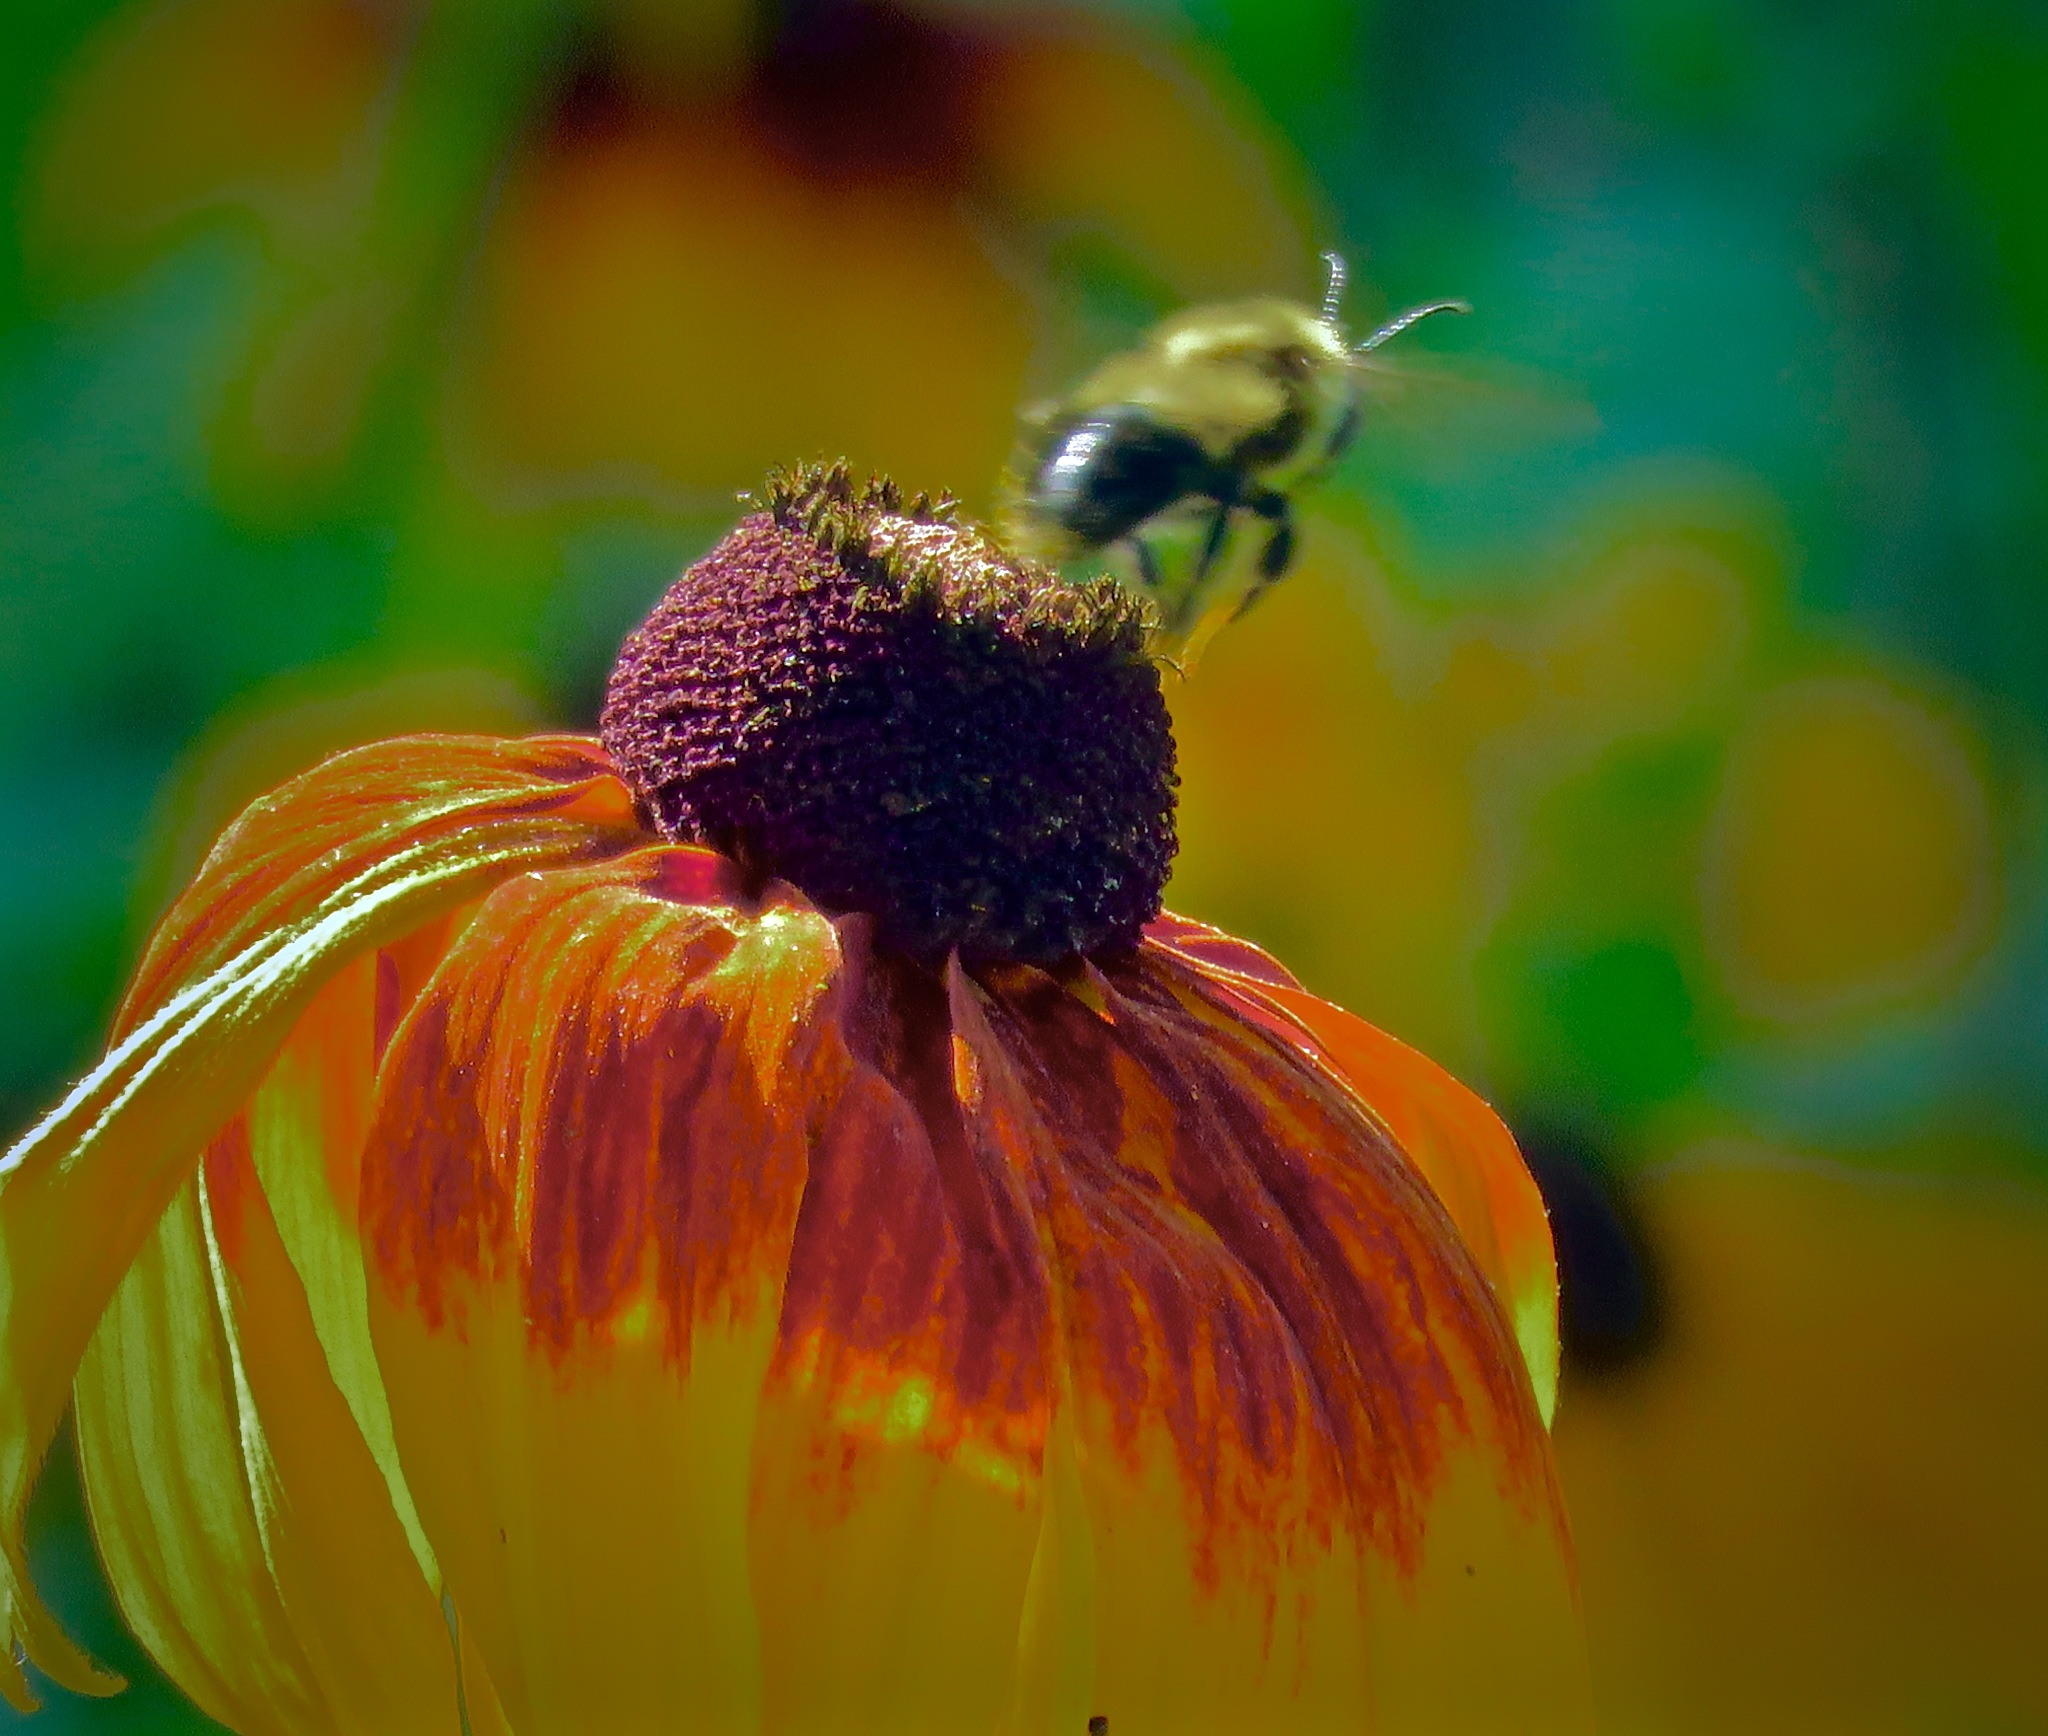 have only seen a few bees so far ... but coming soon  by David Devion